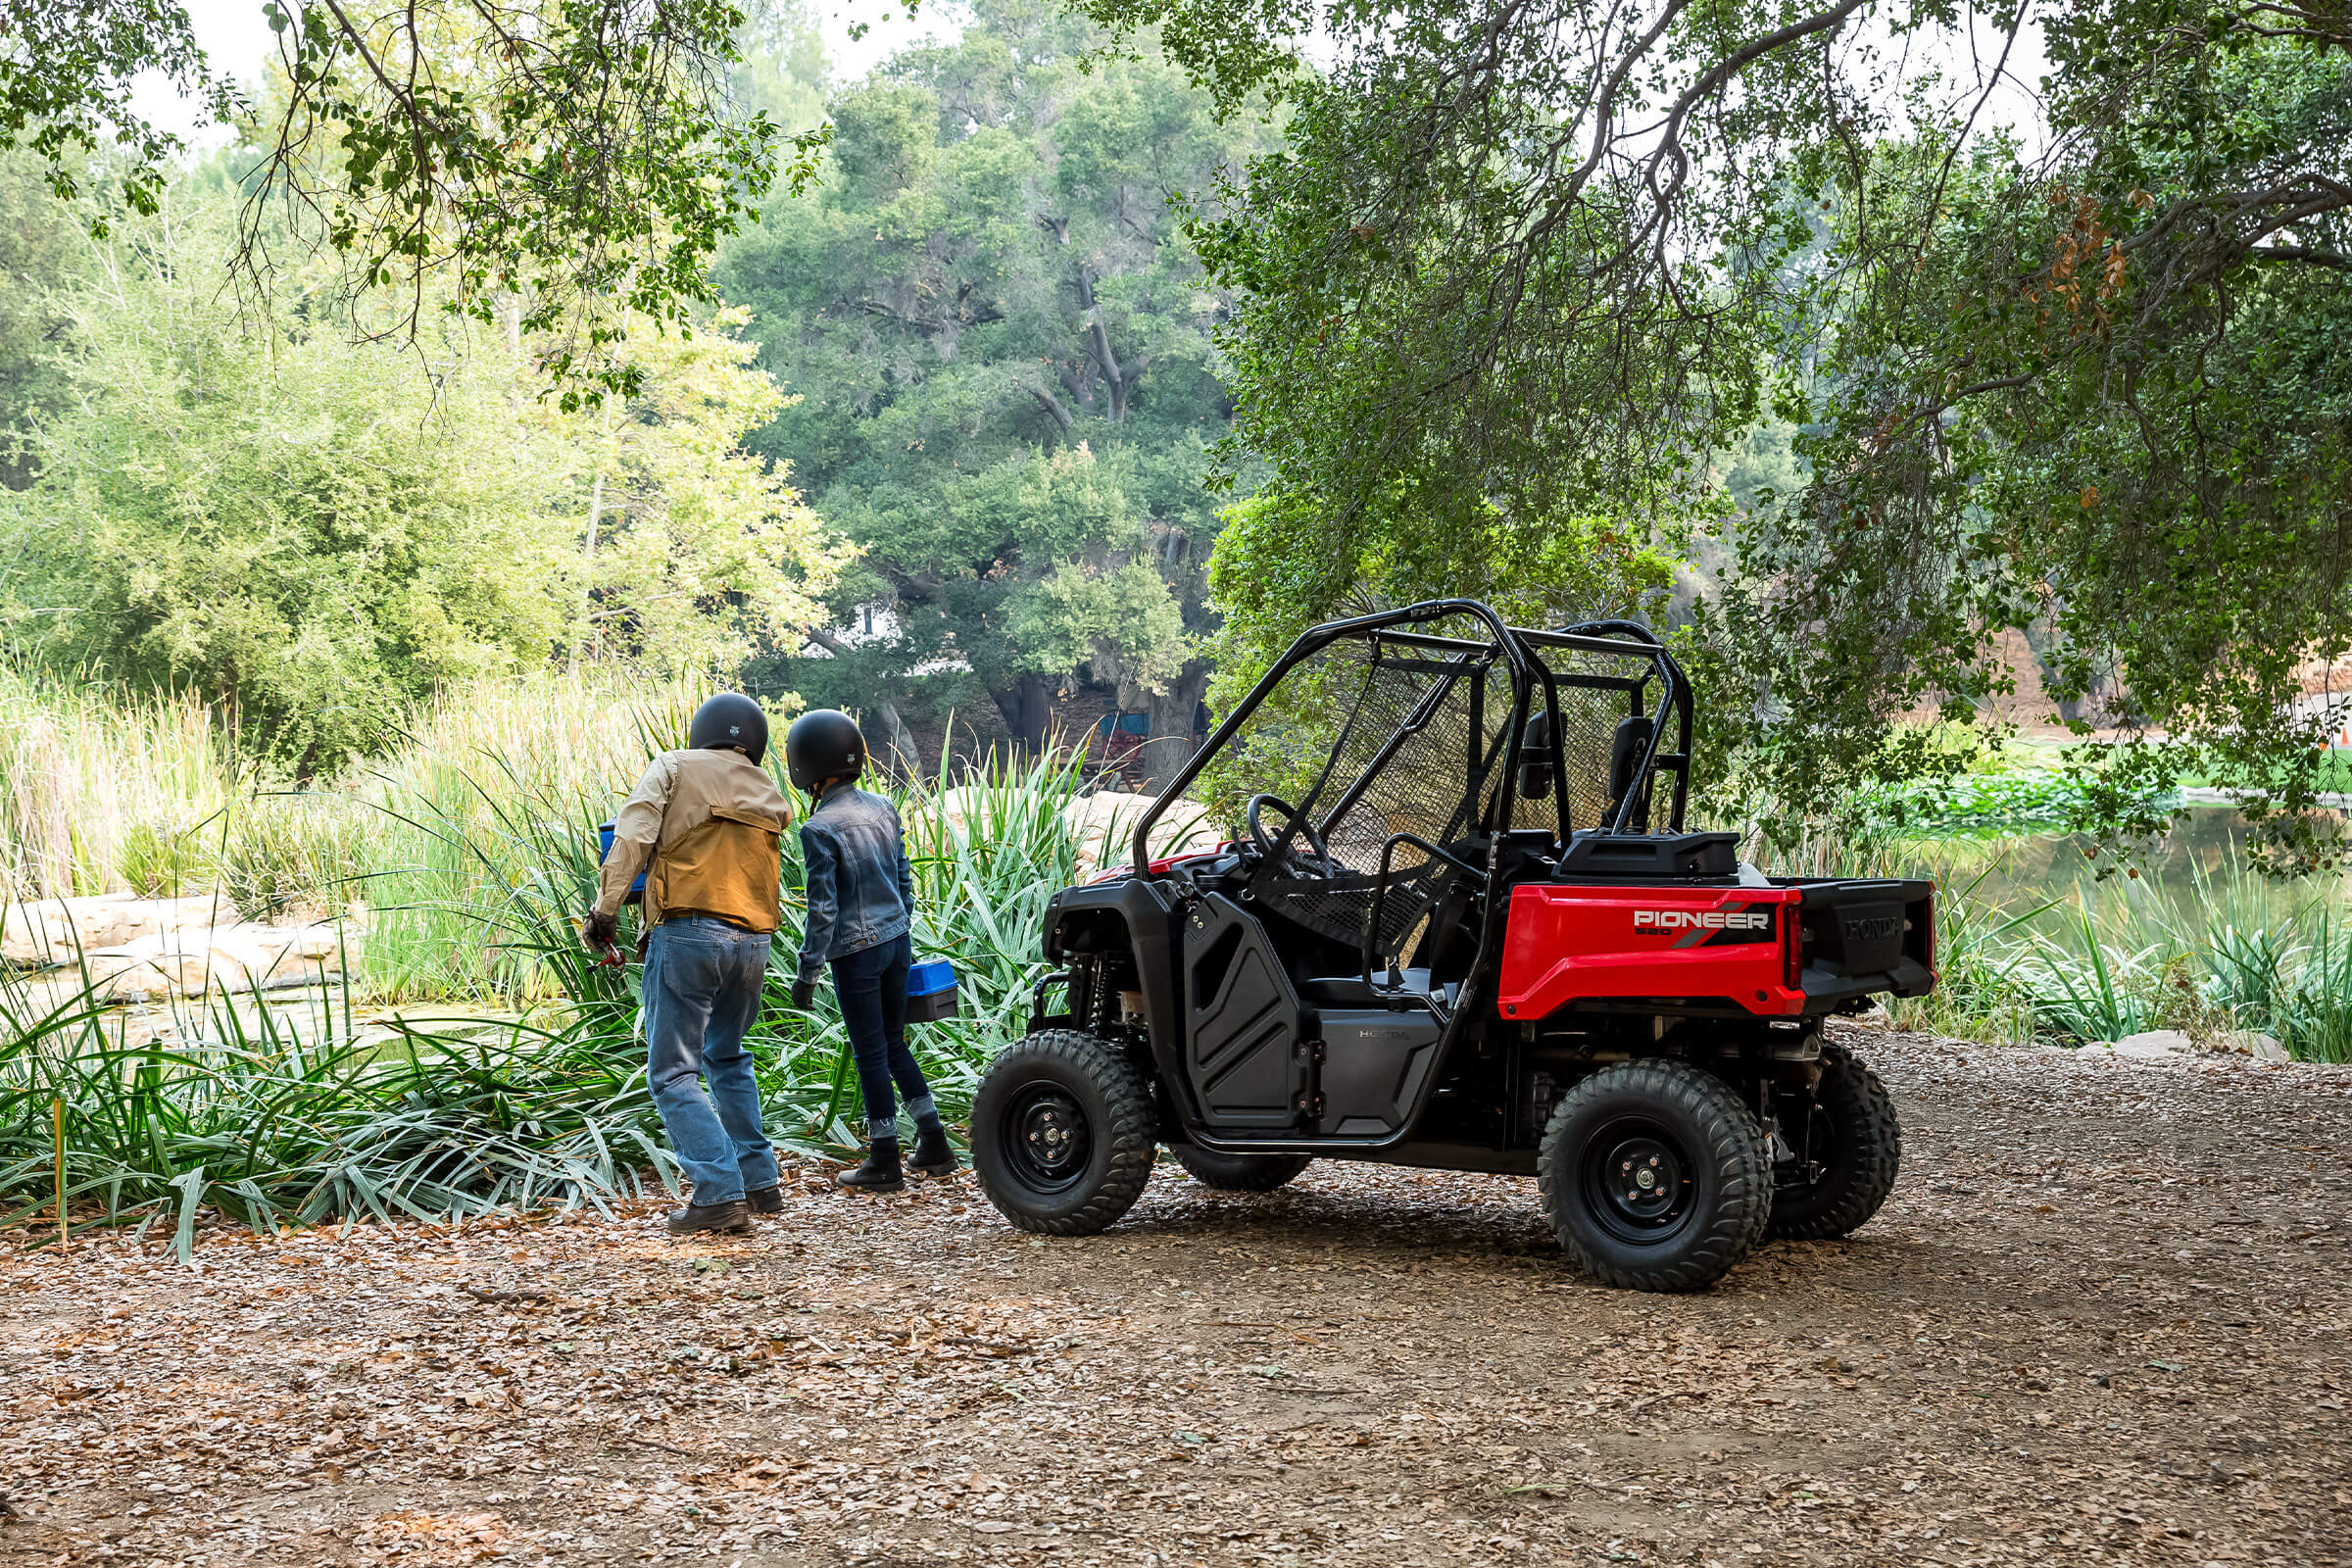 2021 Honda Pioneer 520 in Amherst, Ohio - Photo 2